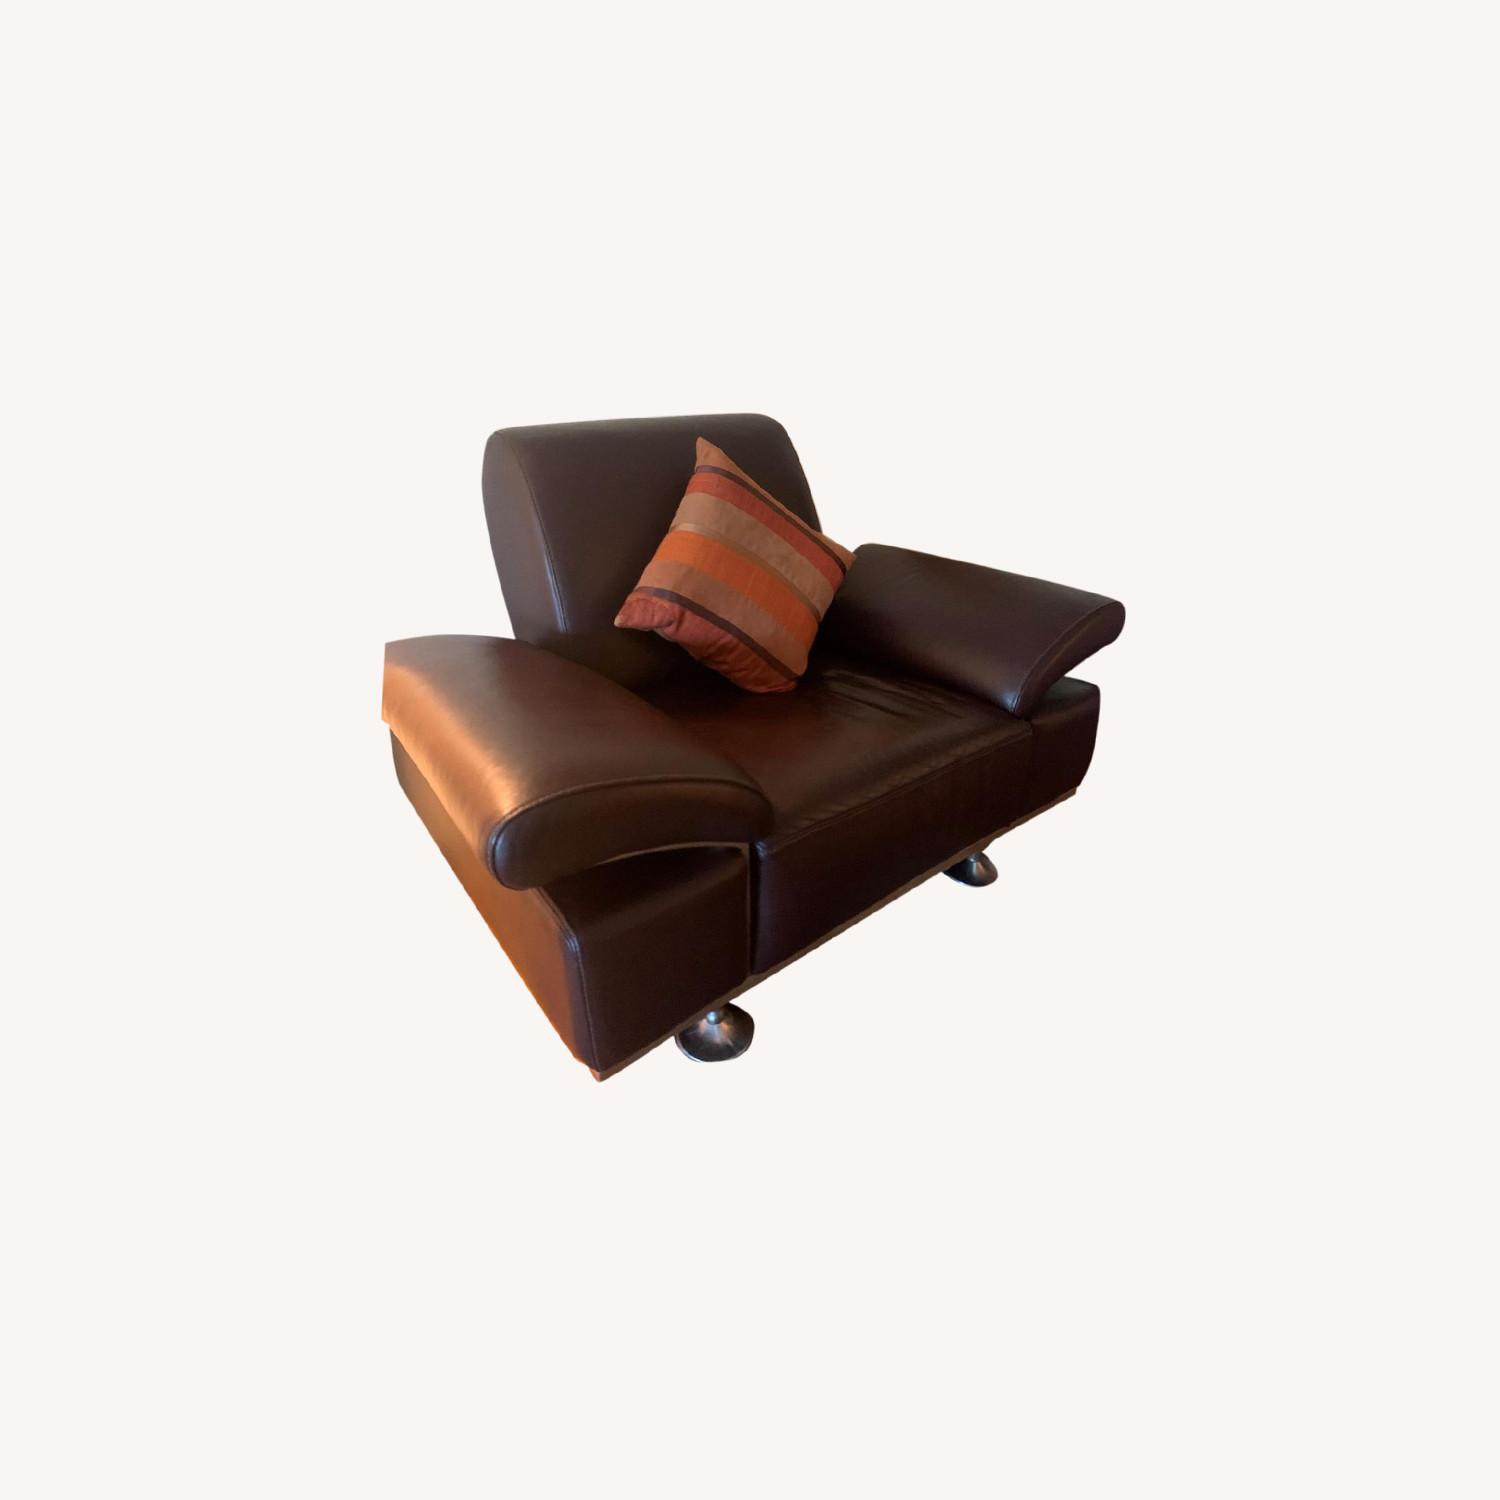 Moroni Brown Leather AccentChair - image-0